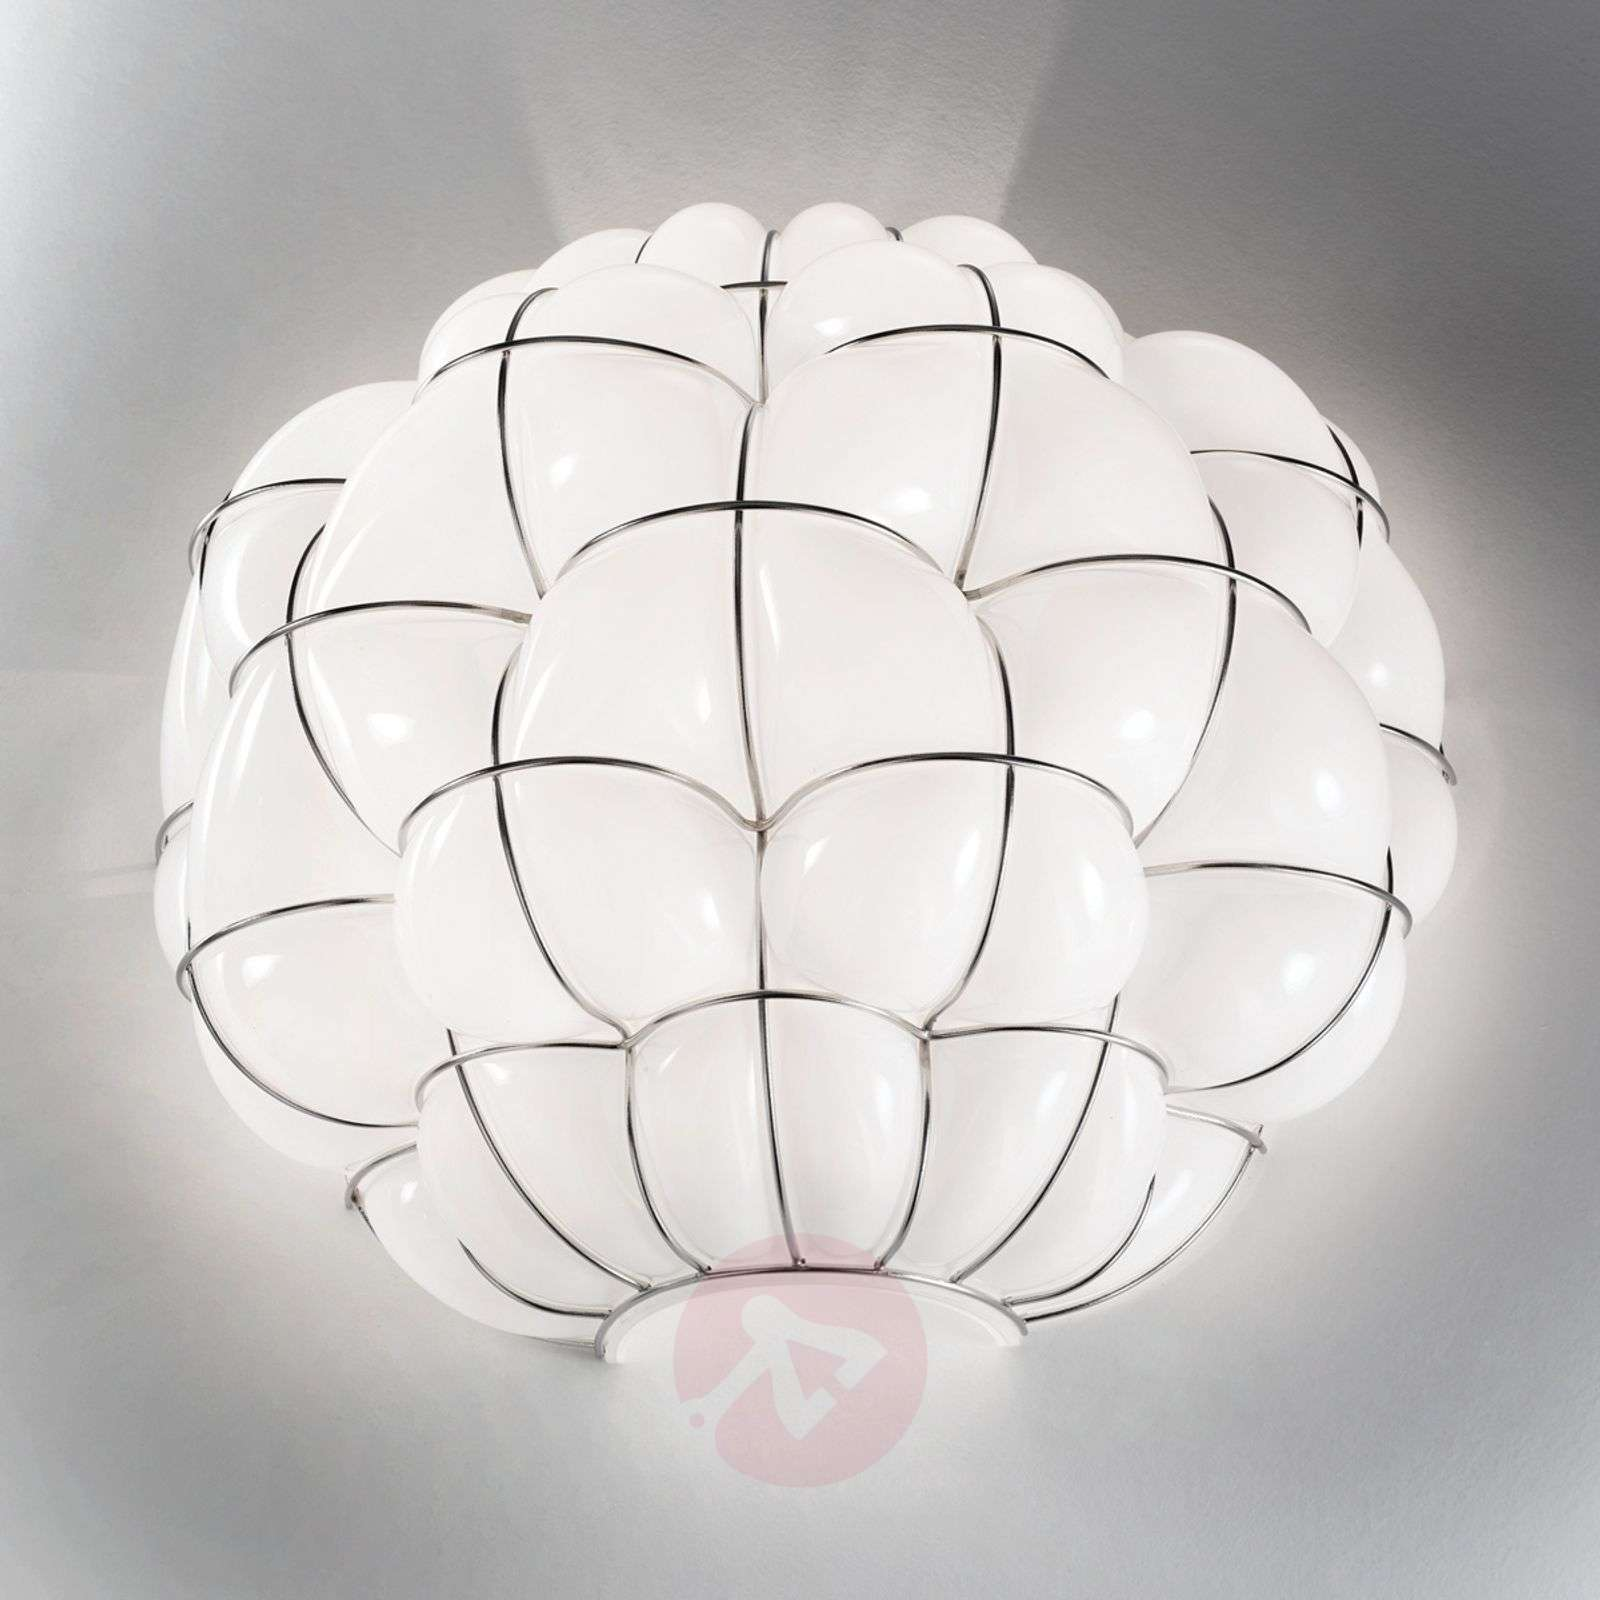 Pouff wall light in white and stainless steel Lights.co.uk